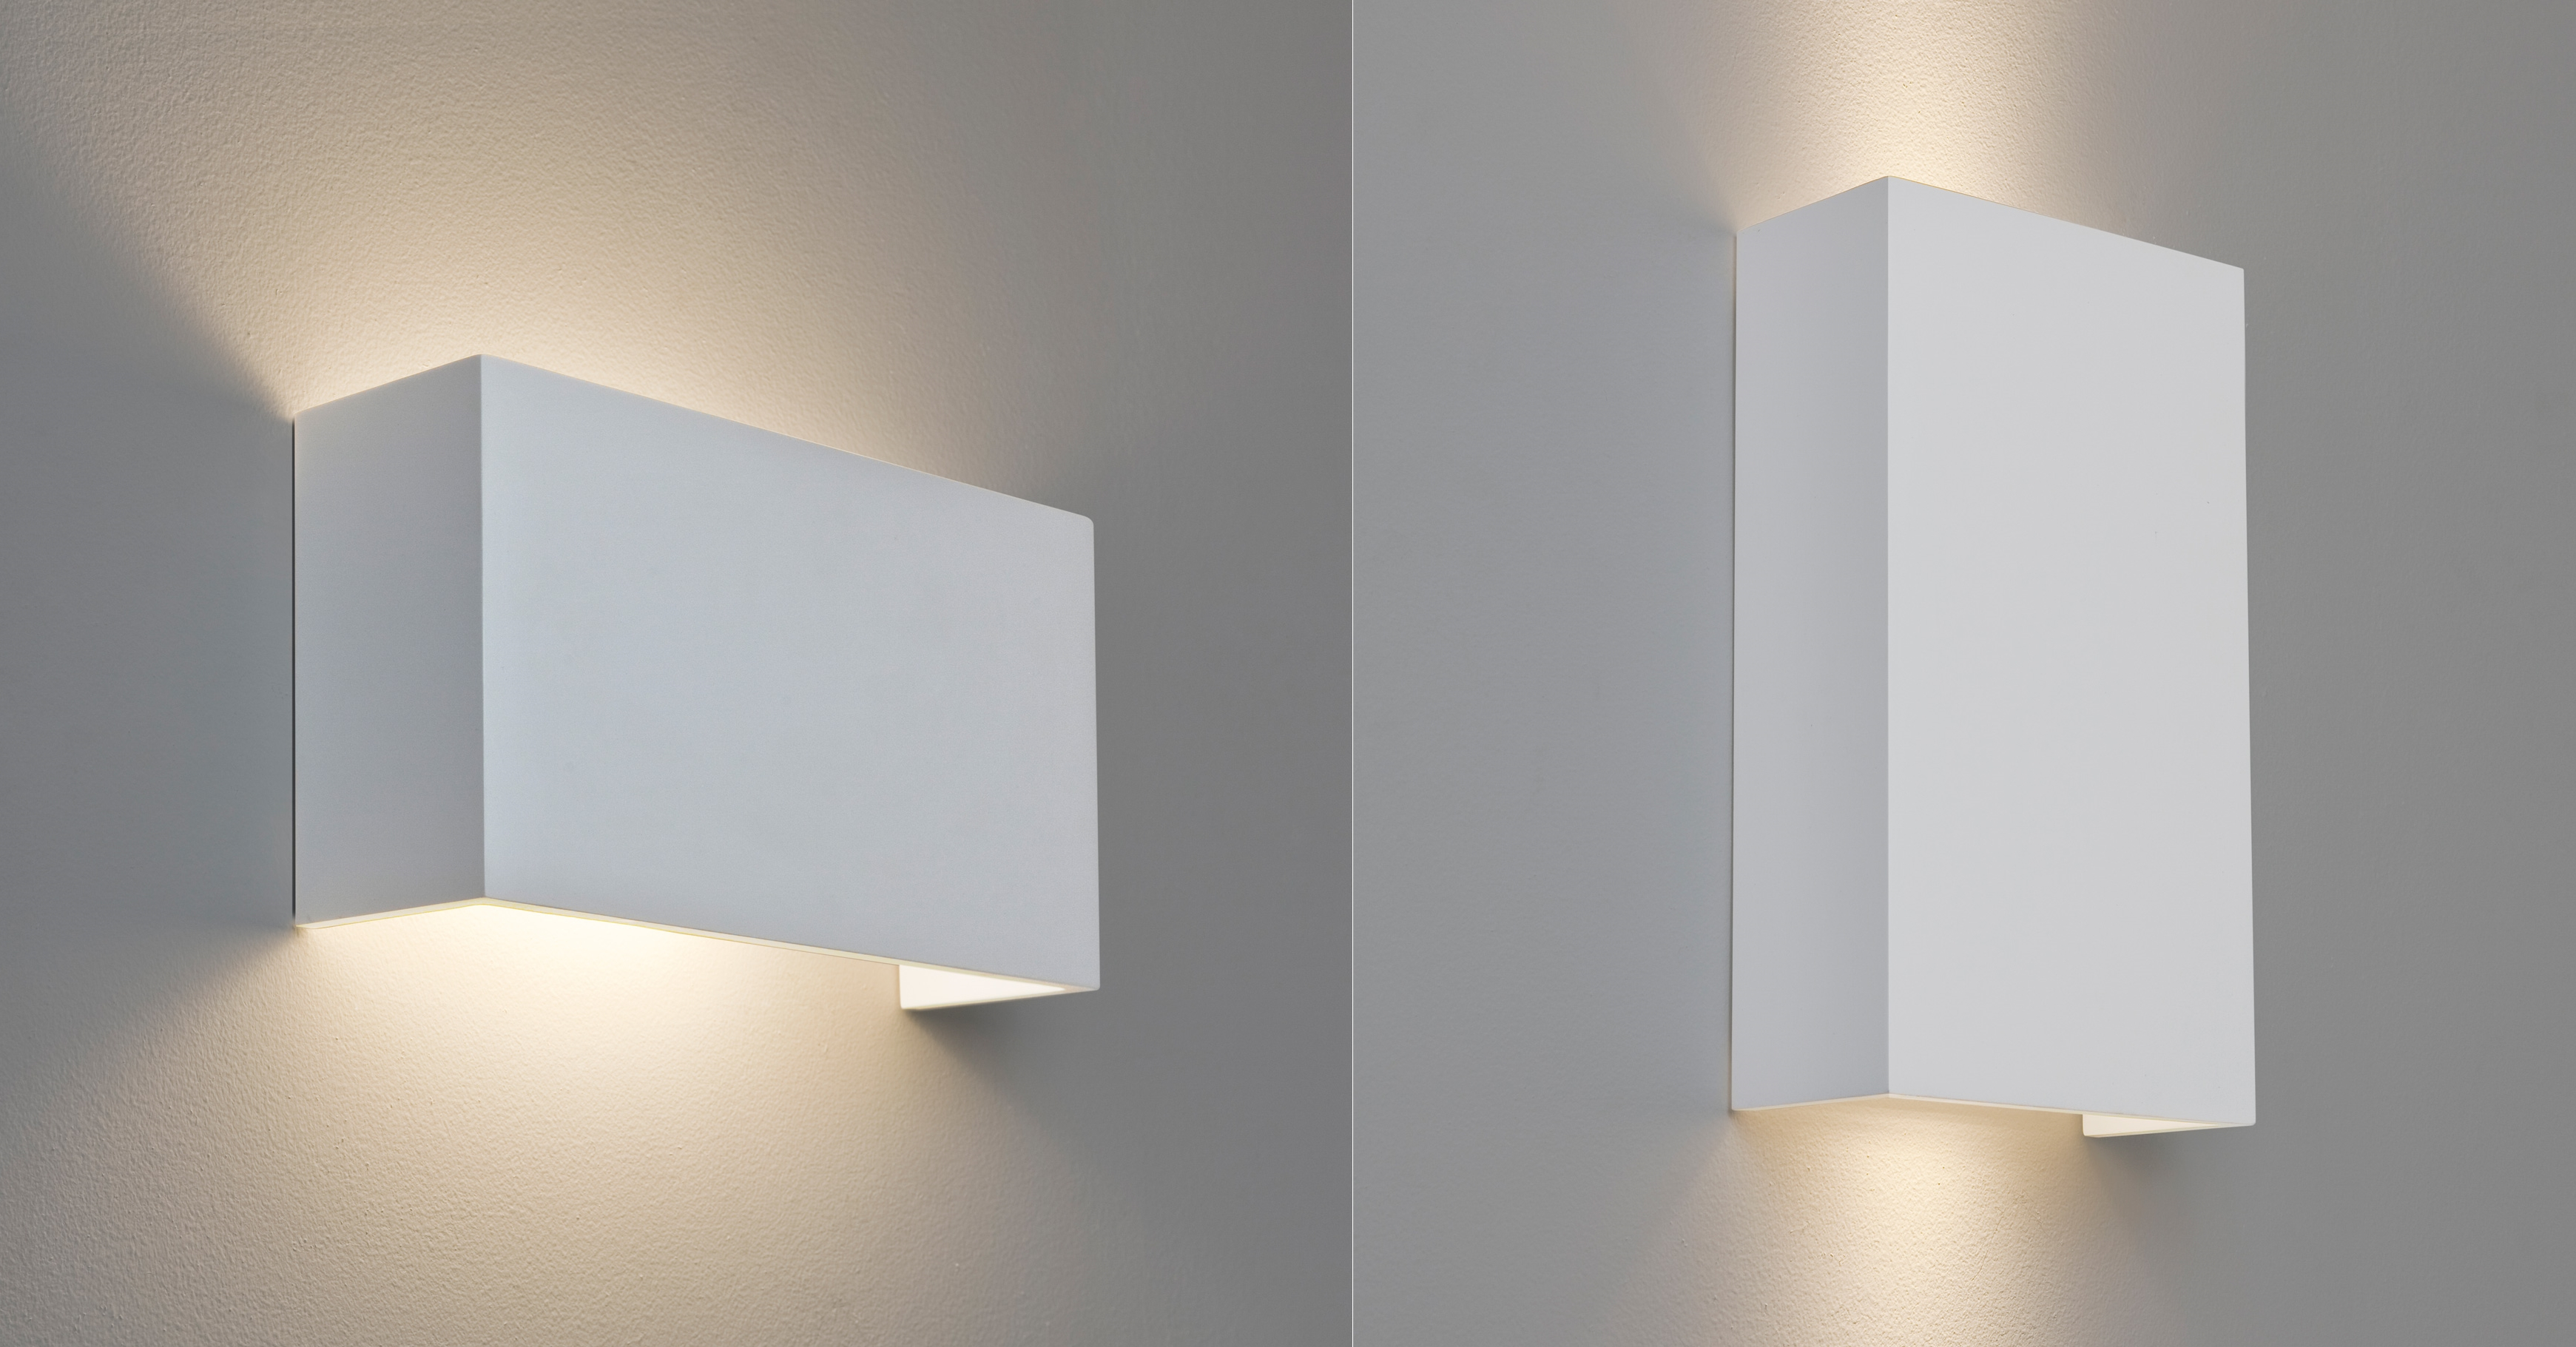 Ceramic Wall Lights uk Plaster Ceramic Wall Light